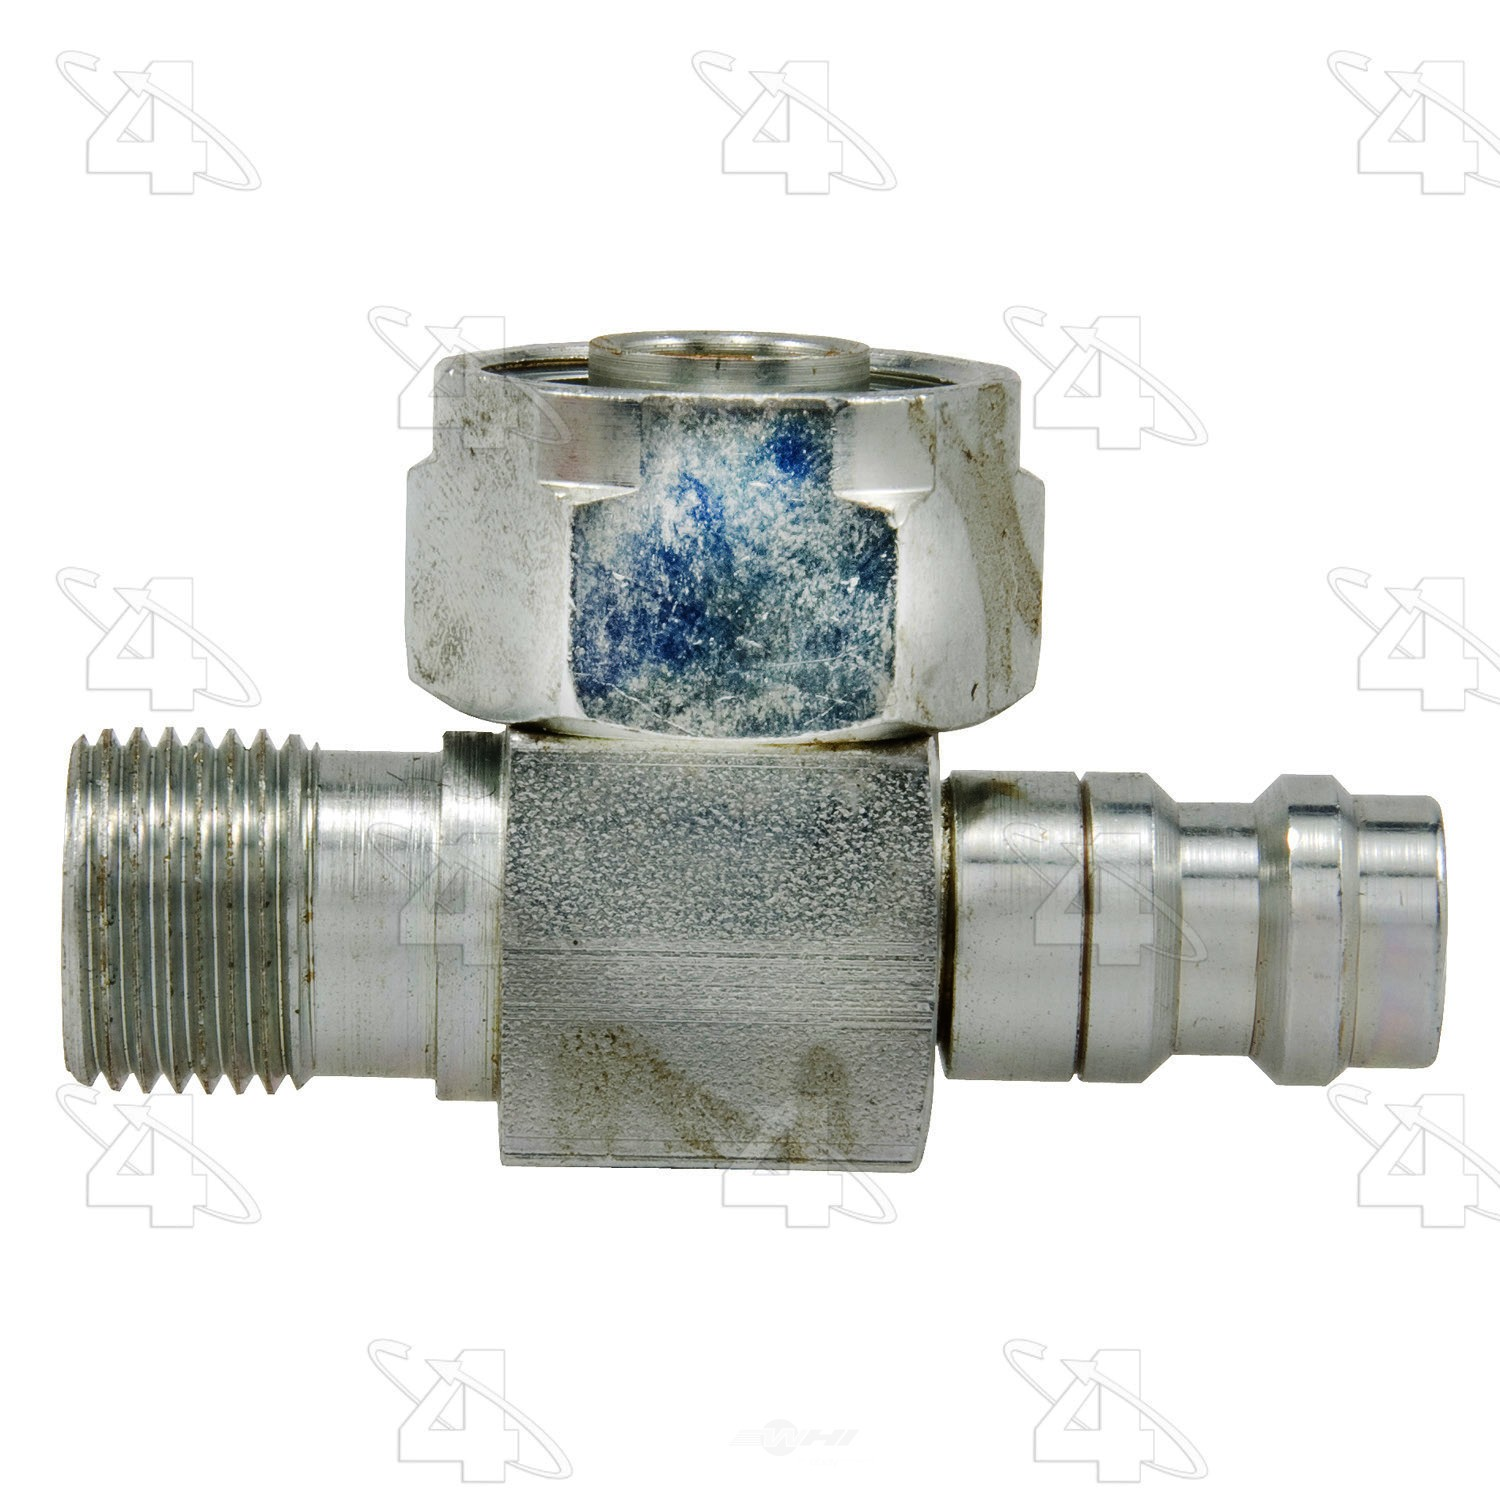 Four Seasons 14718 R134a Service Valve Compressor Air Conditioning Fitting